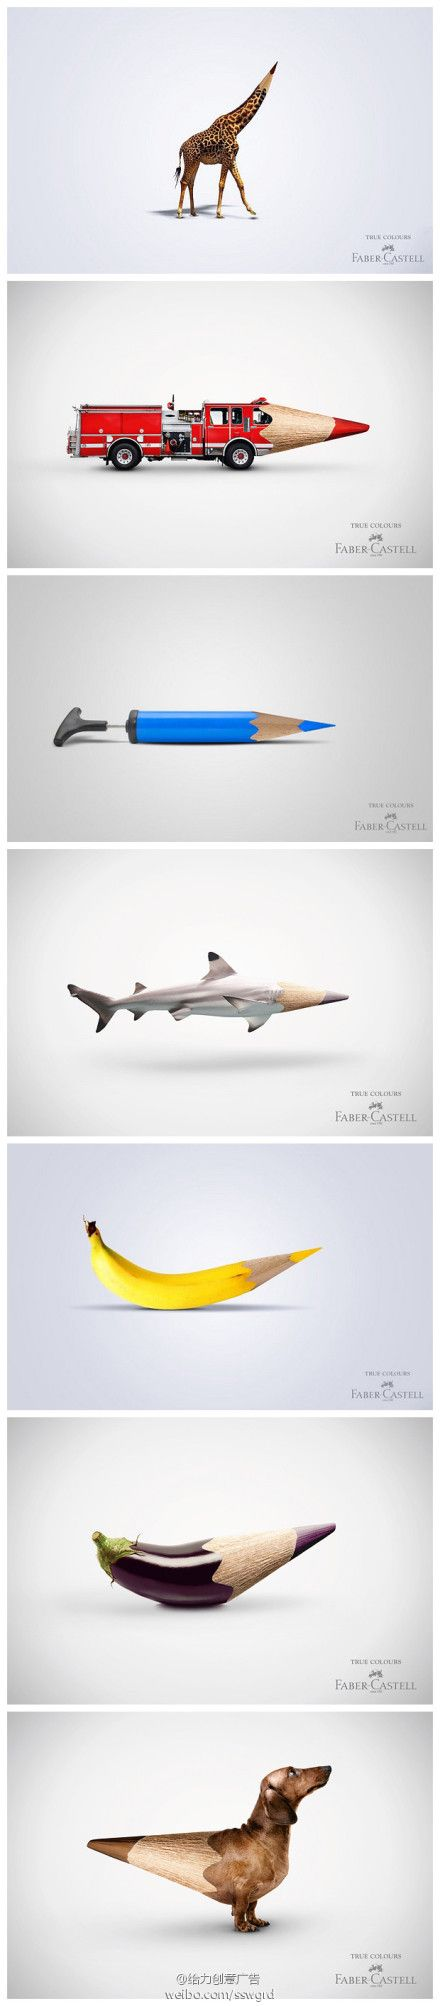 "Faber-Castell ""True Colours"" #ad #adv #ads #marketing #creative"